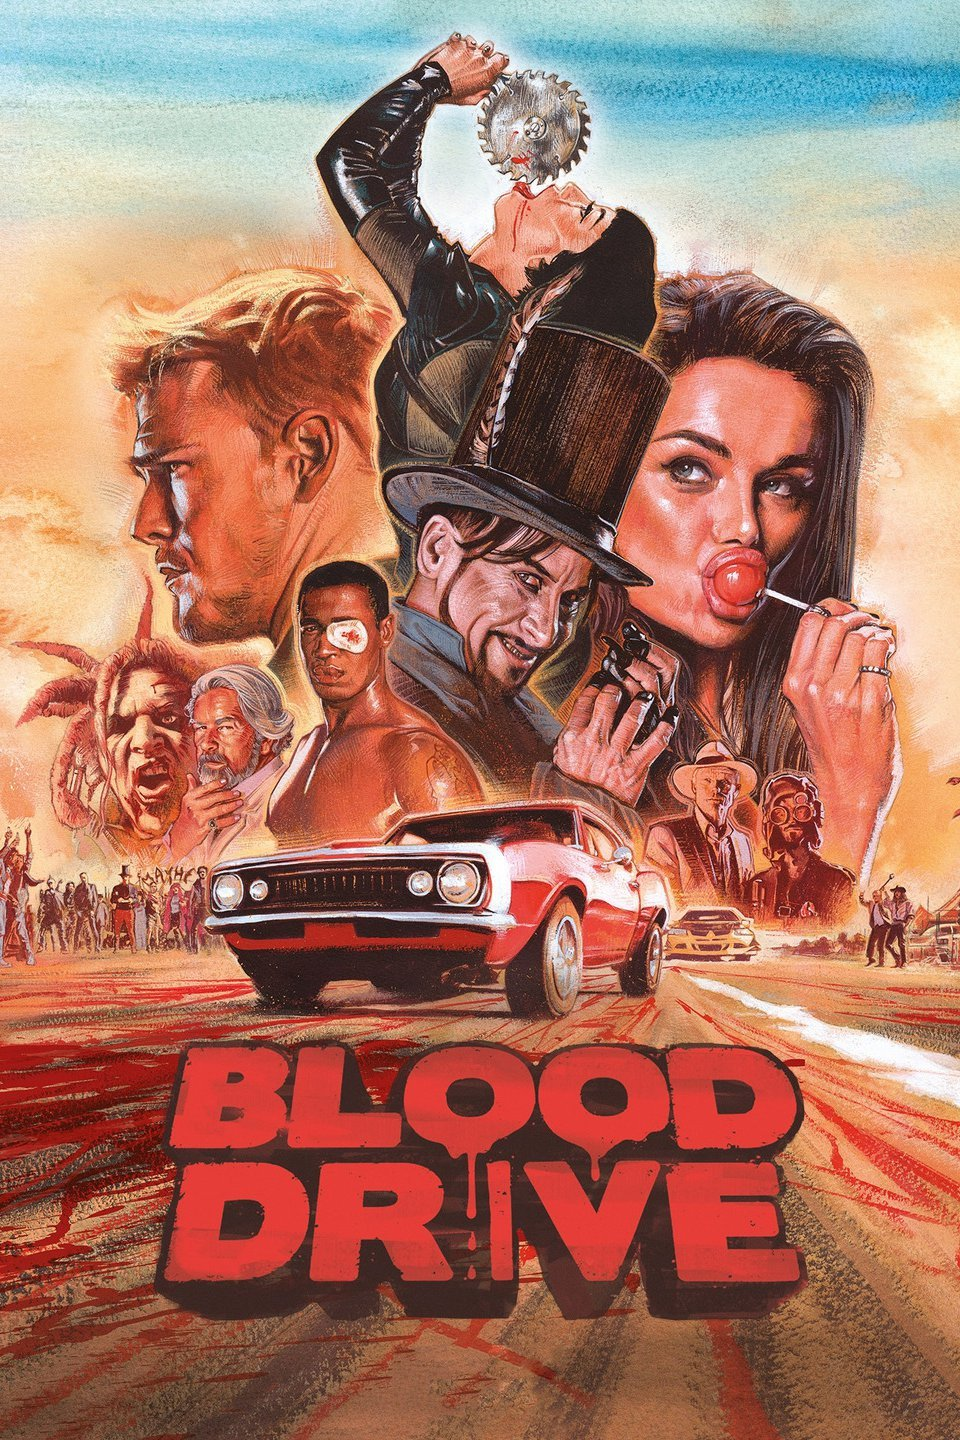 Blood Drive Season 1 Episode 3 Download HDTV 480p & 720p